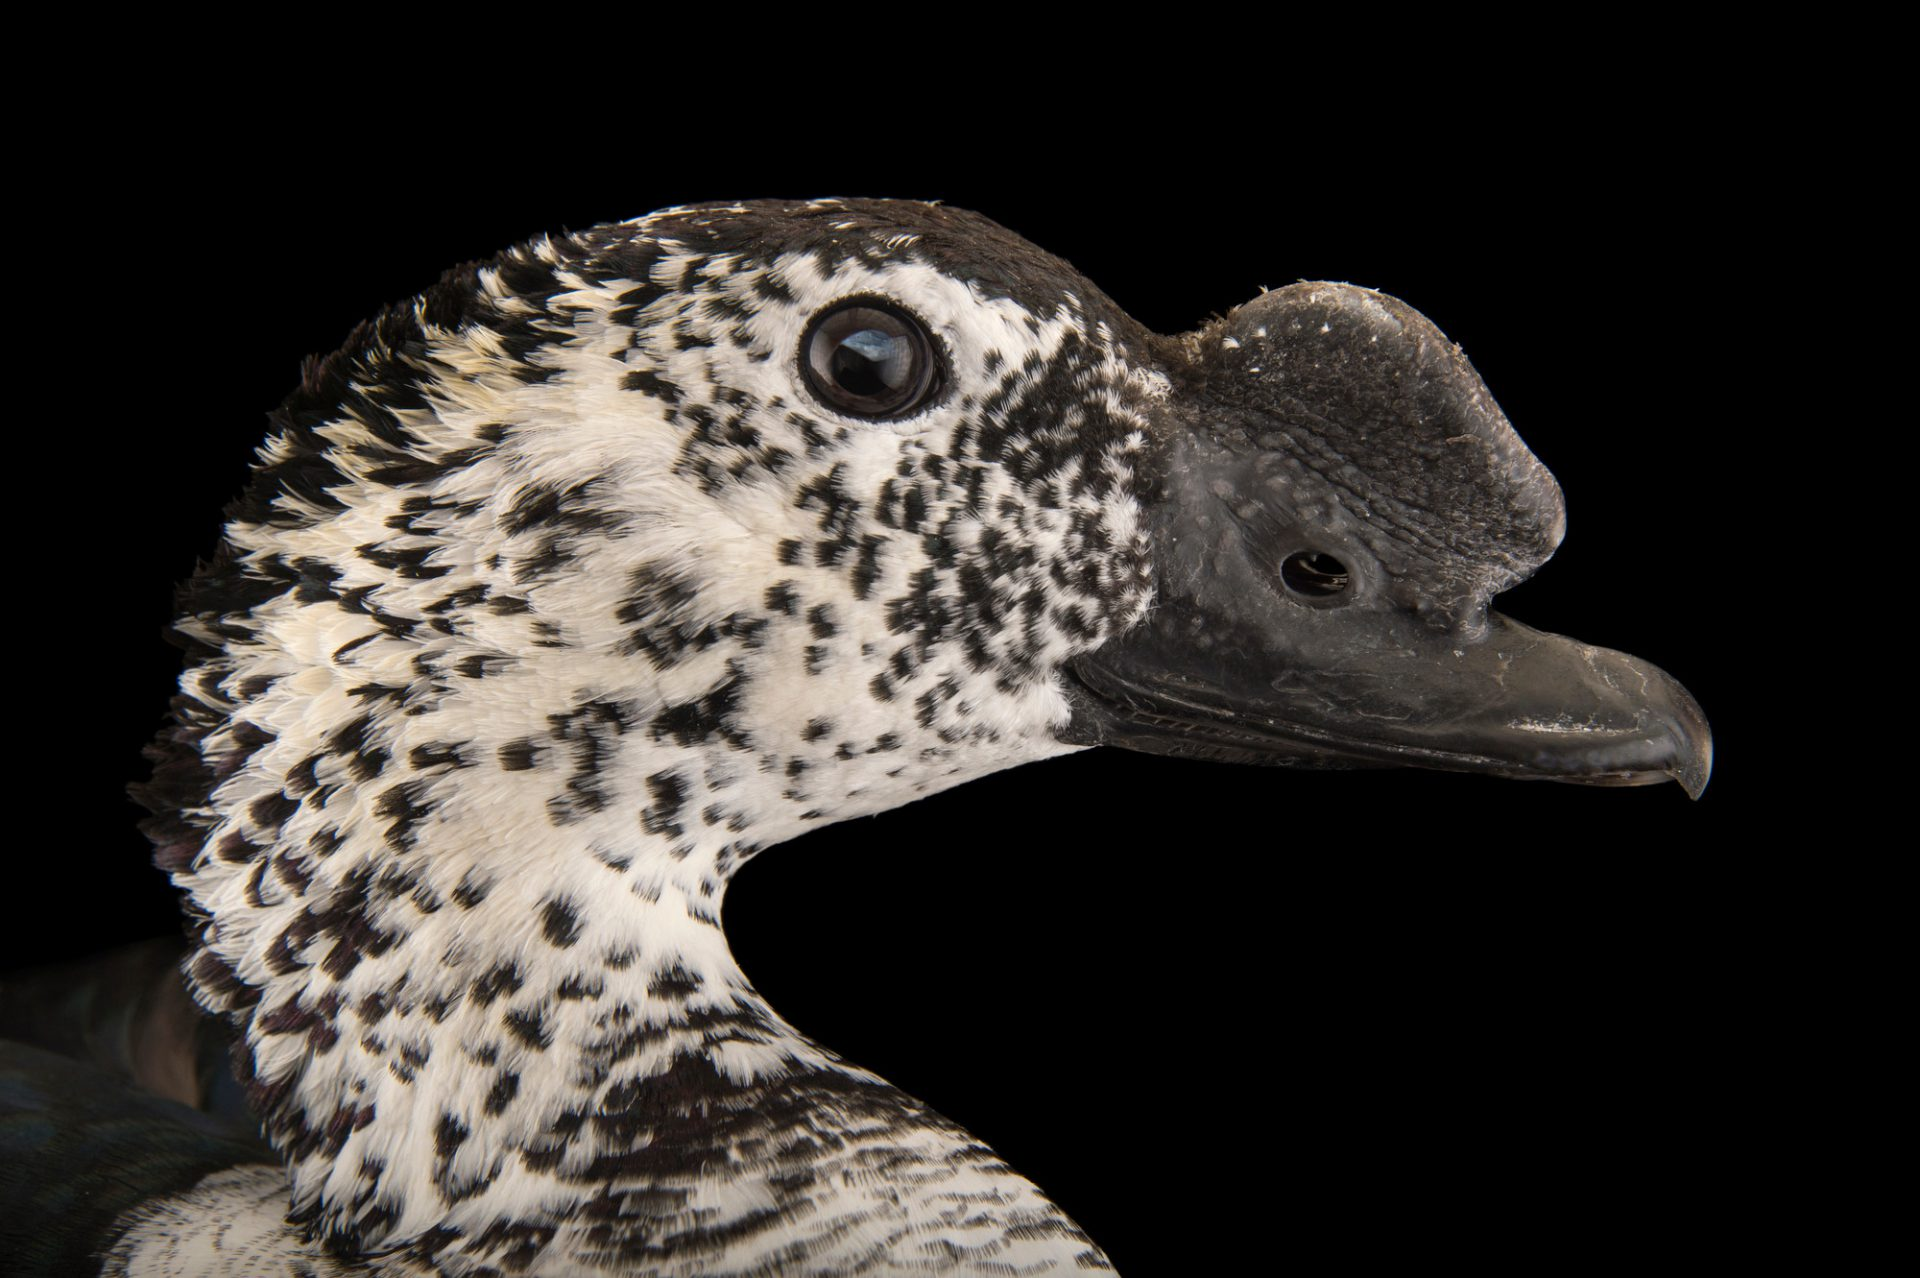 Picture of a South-American comb duck (Sarkidiornis sylvicola) at Sylvan Heights Bird Park.